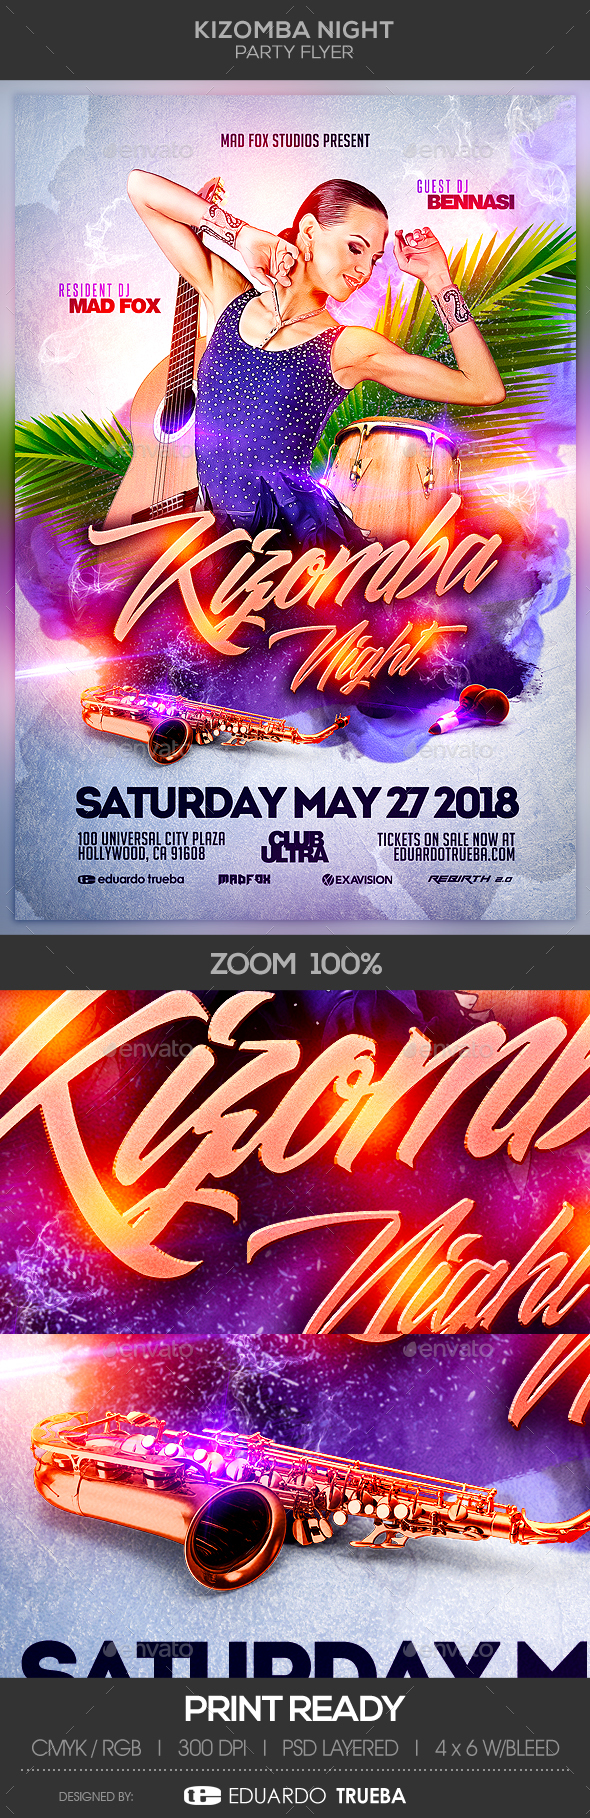 Kizomba Night Party Flyer - Clubs & Parties Events